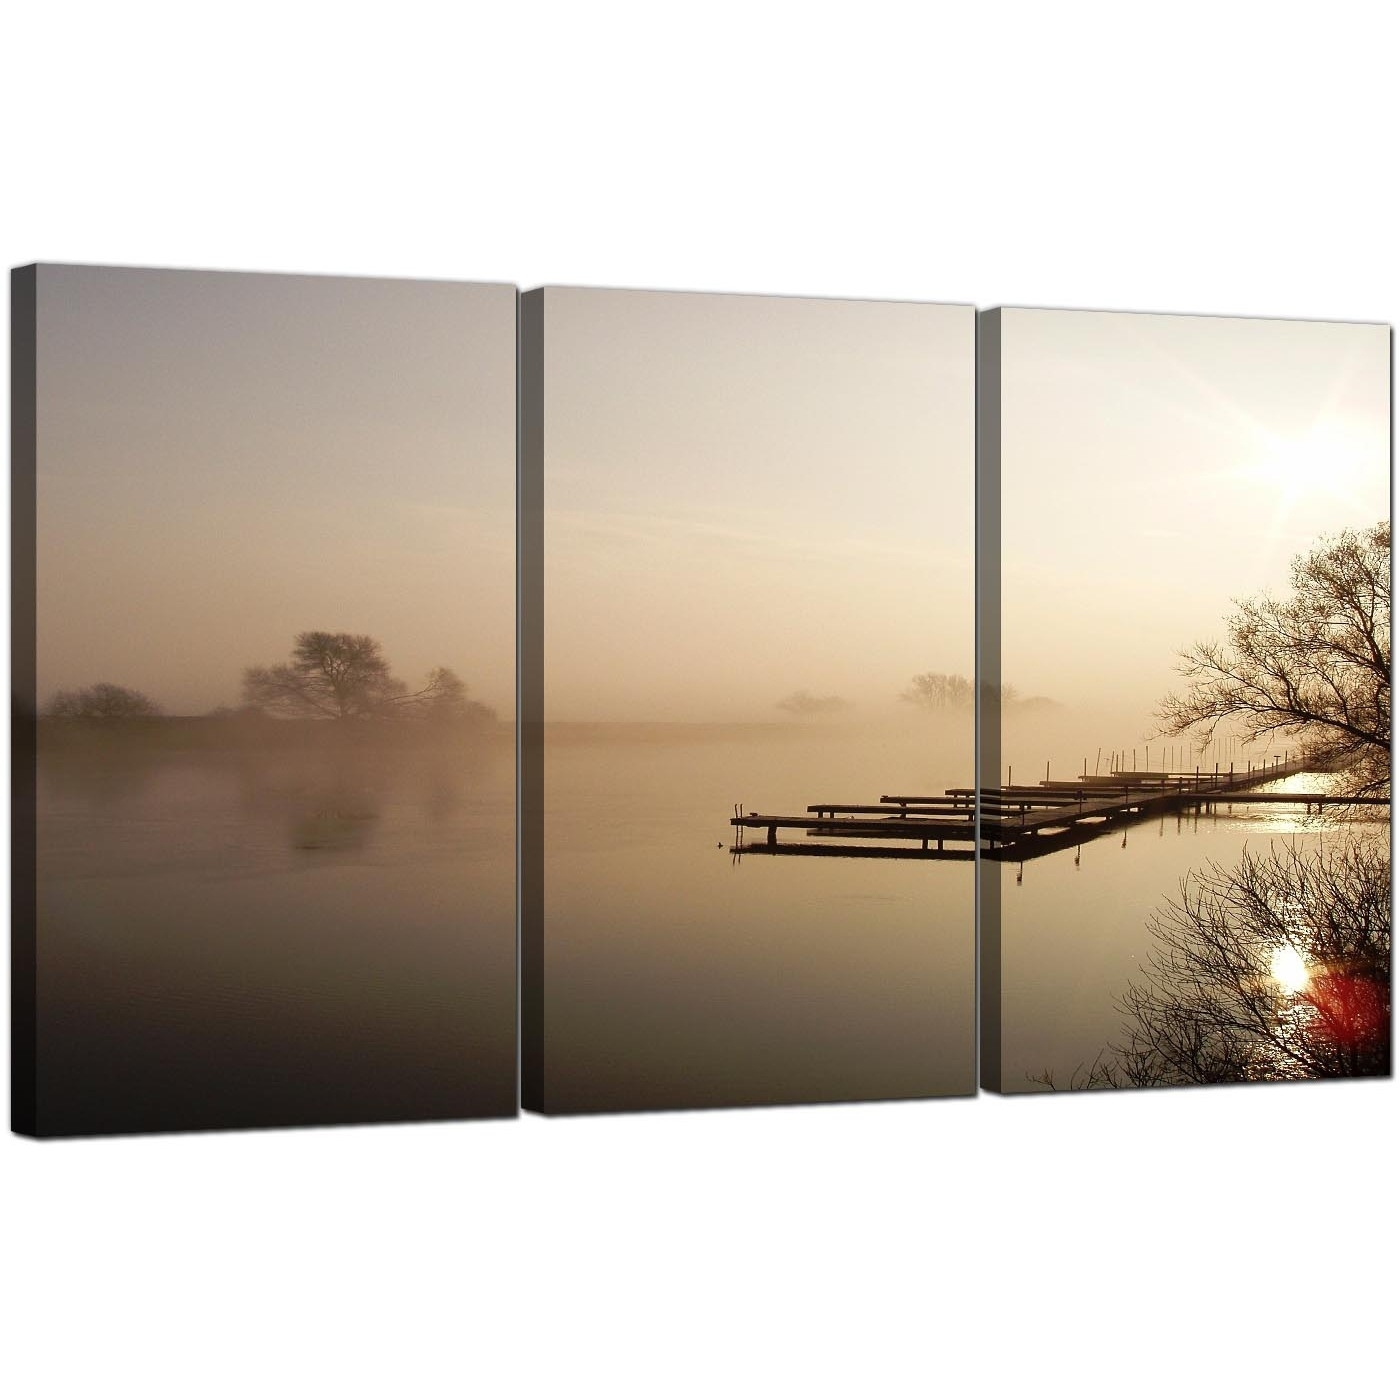 Landscape Canvas – Gardening Design Intended For Current Landscape Canvas Wall Art (Gallery 5 of 15)